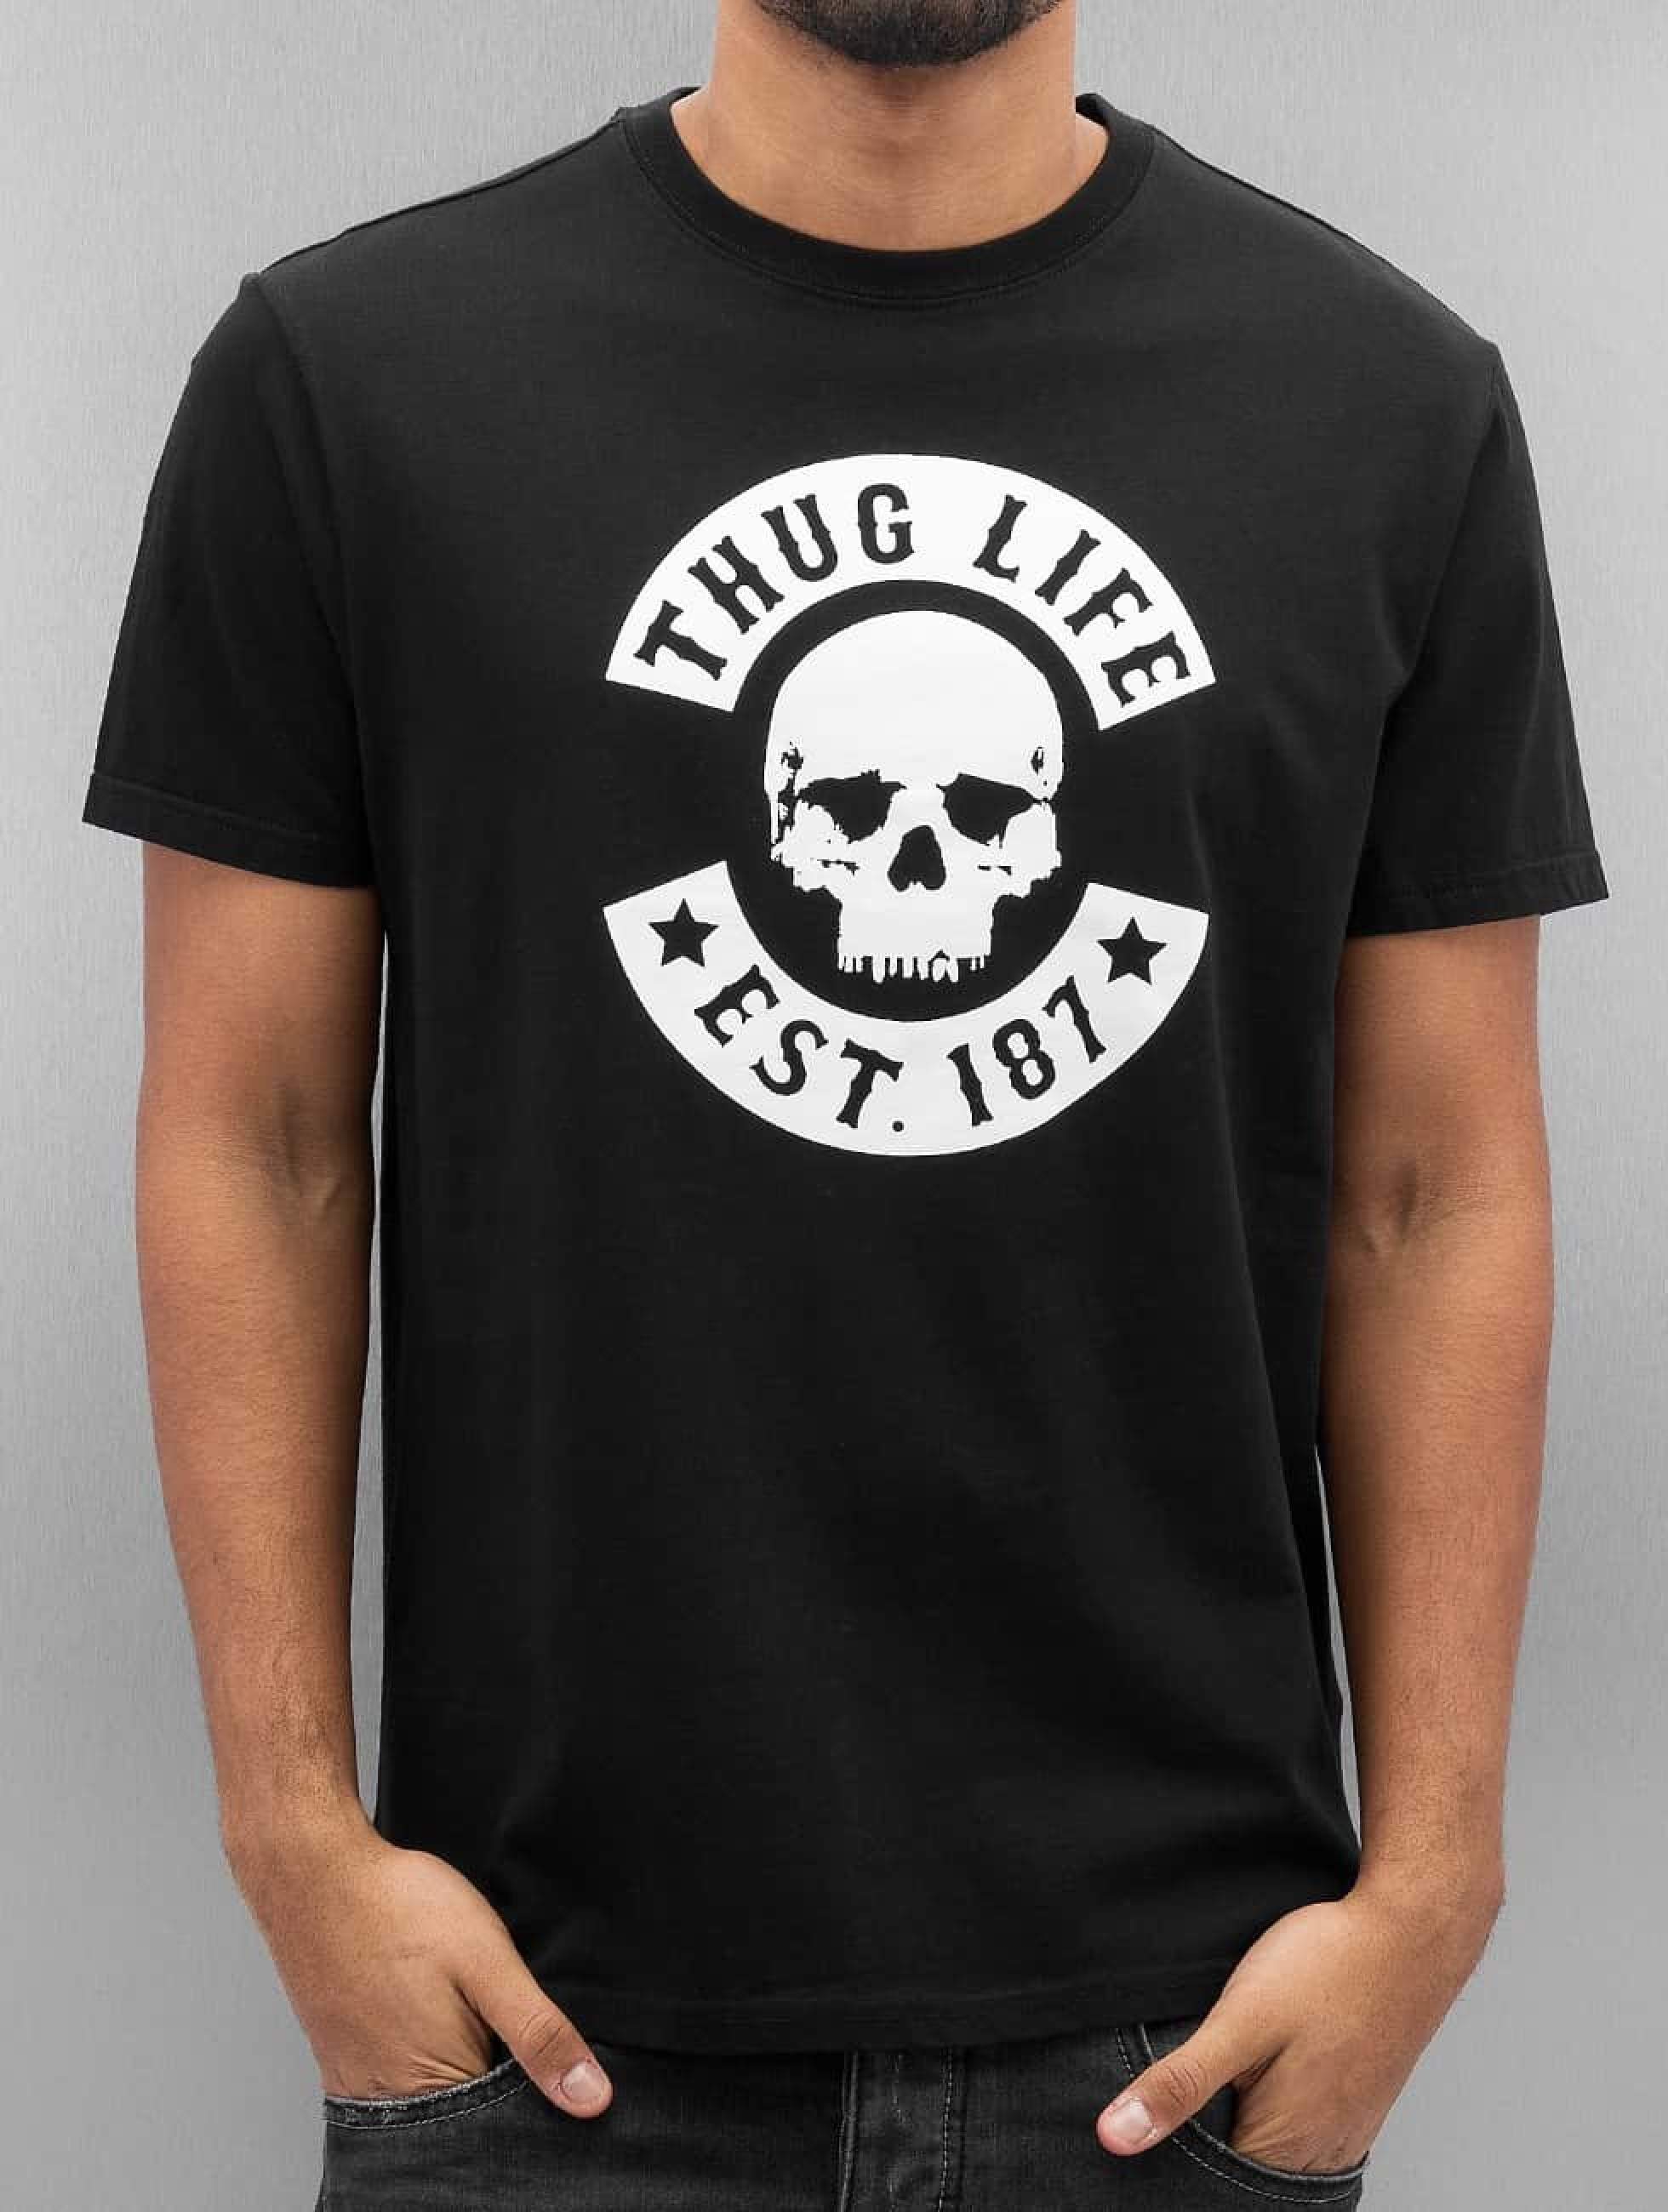 Thug Life / T-Shirt Zoro in black 2XL